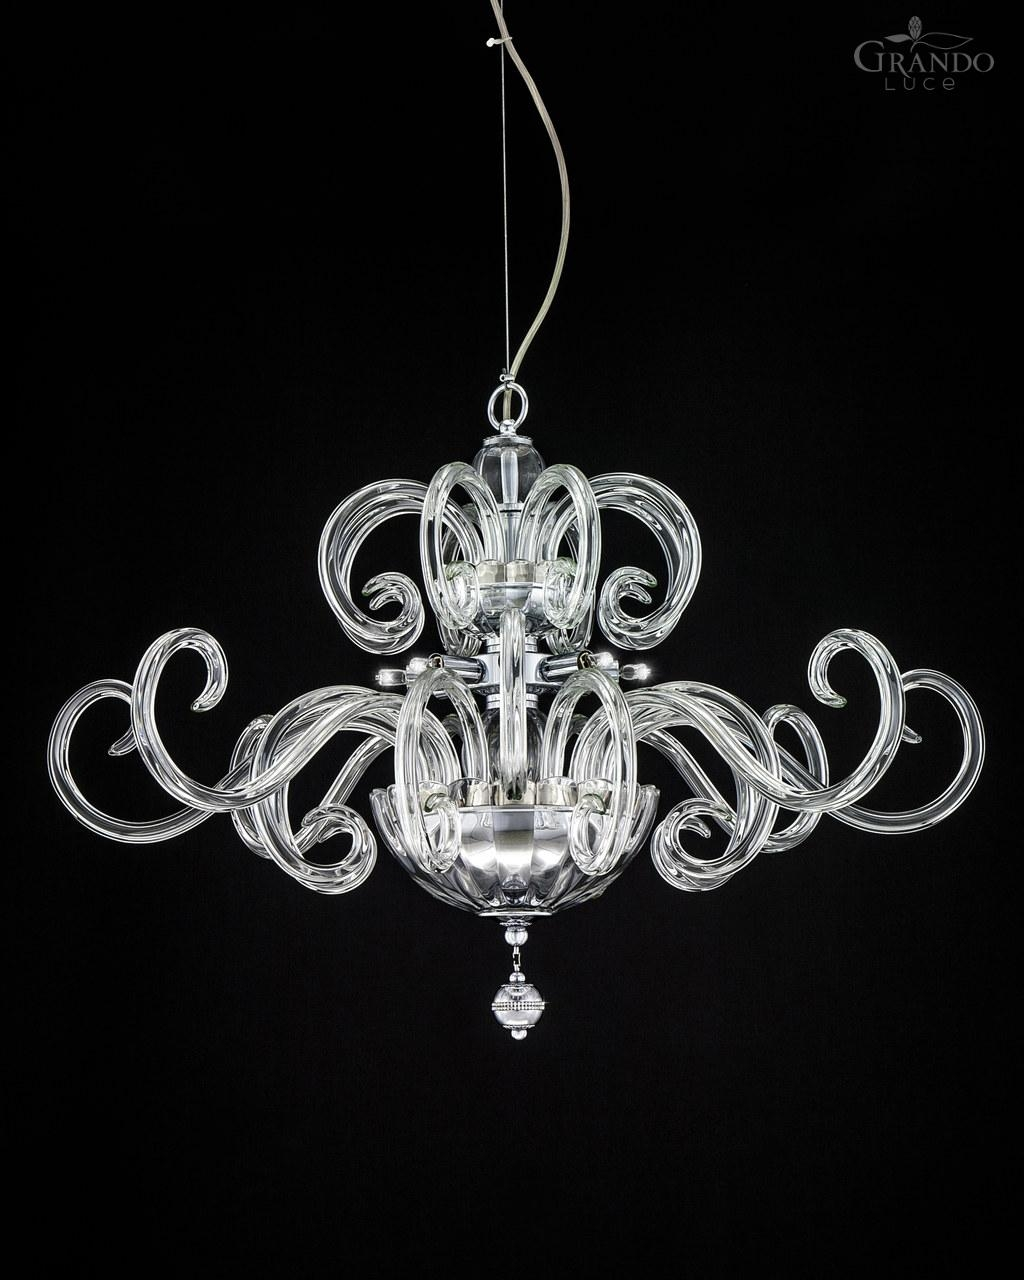 119sm Chrome Modern Crystal Chandelier With Swarovski Elements In Chrome And Crystal Chandeliers (Image 2 of 25)